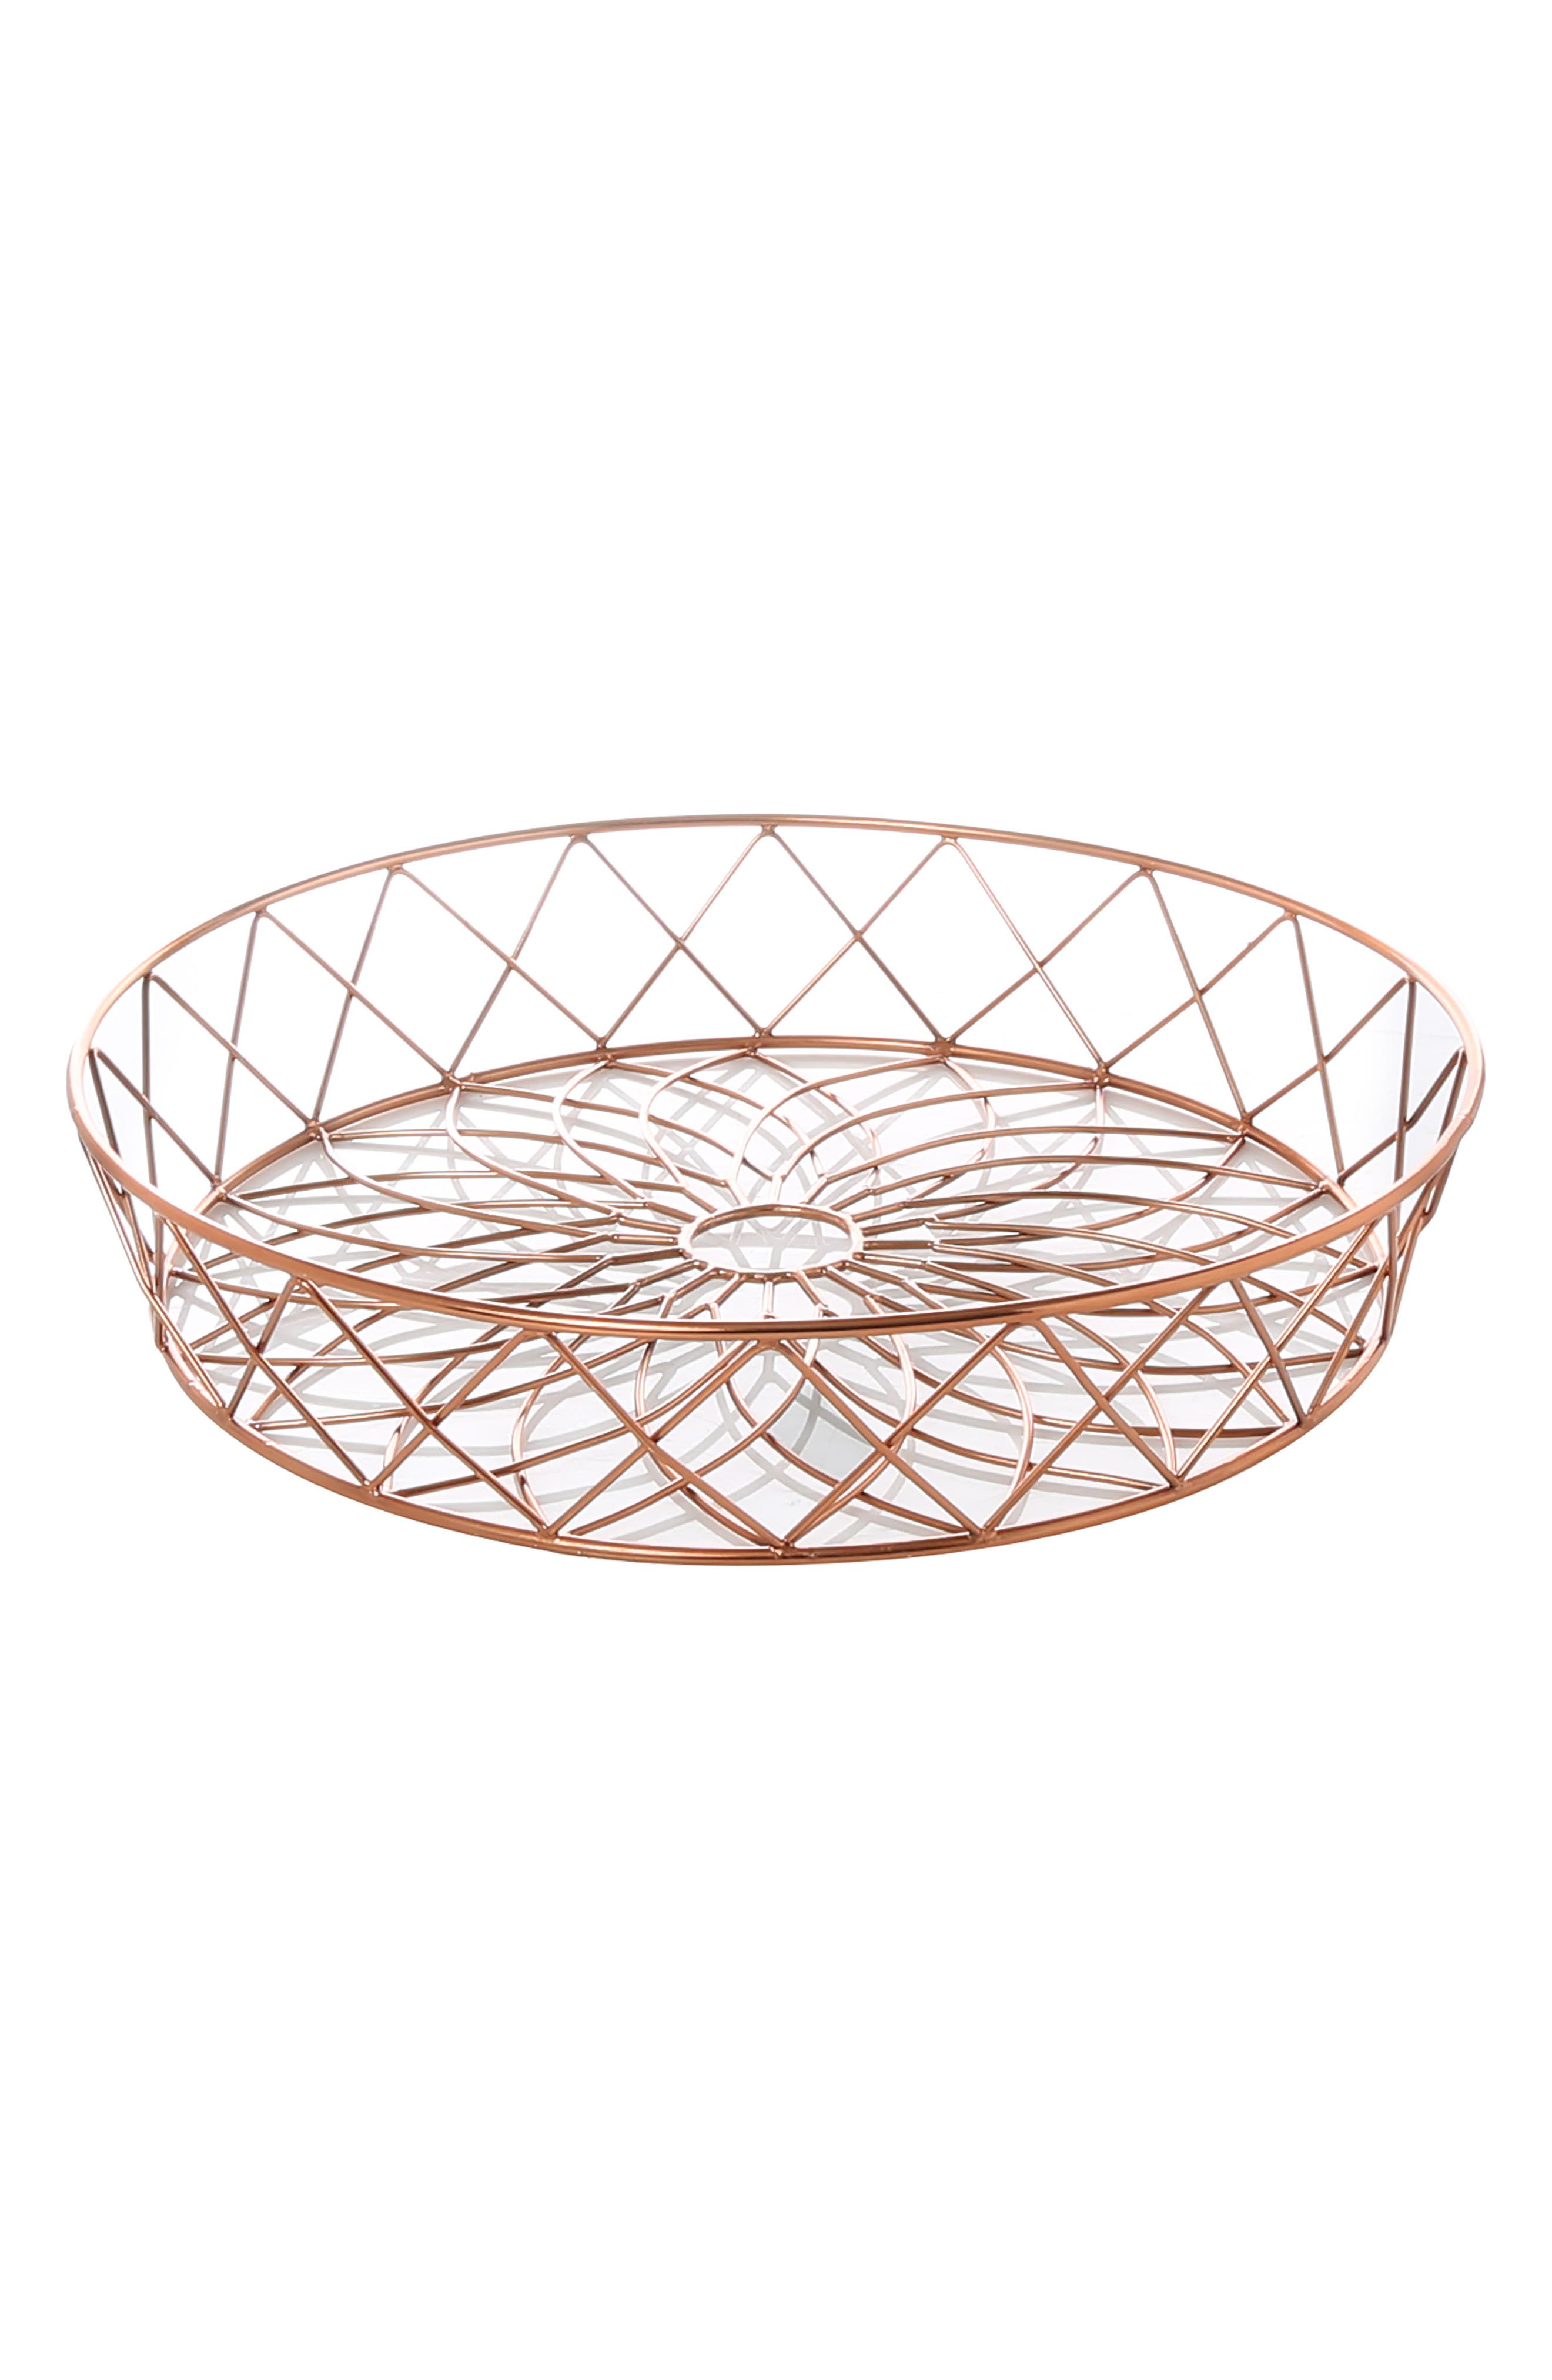 Thirstystone Copper Finish Wire Basket